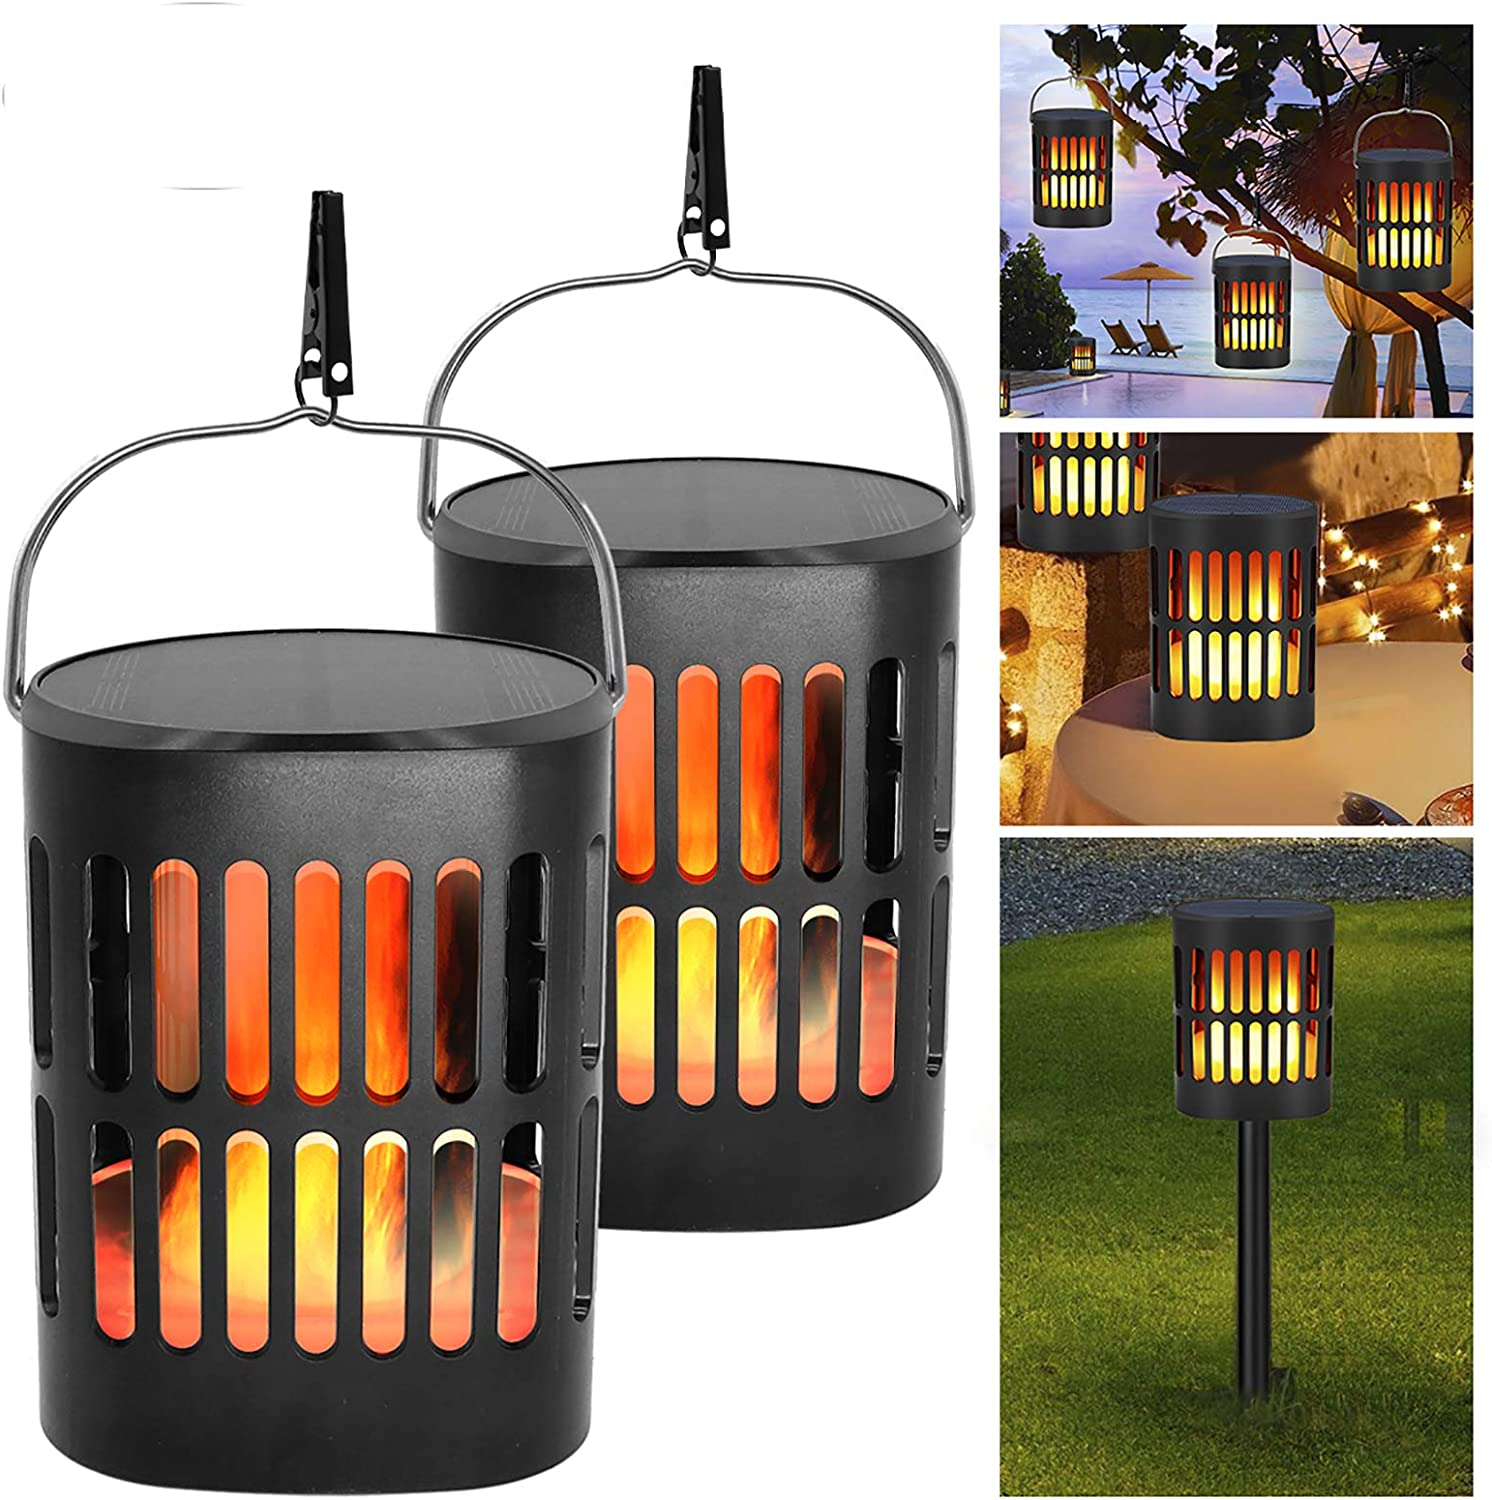 Solar Lantern Lights Outdoor Hanging Decorative -Solar Flame Torch Landscape Pathway 96 Led Waterproof Tabletop Lights Auto On/Off for Path,Camping,Garden,Patio,Deck,Yard: Home Improvement